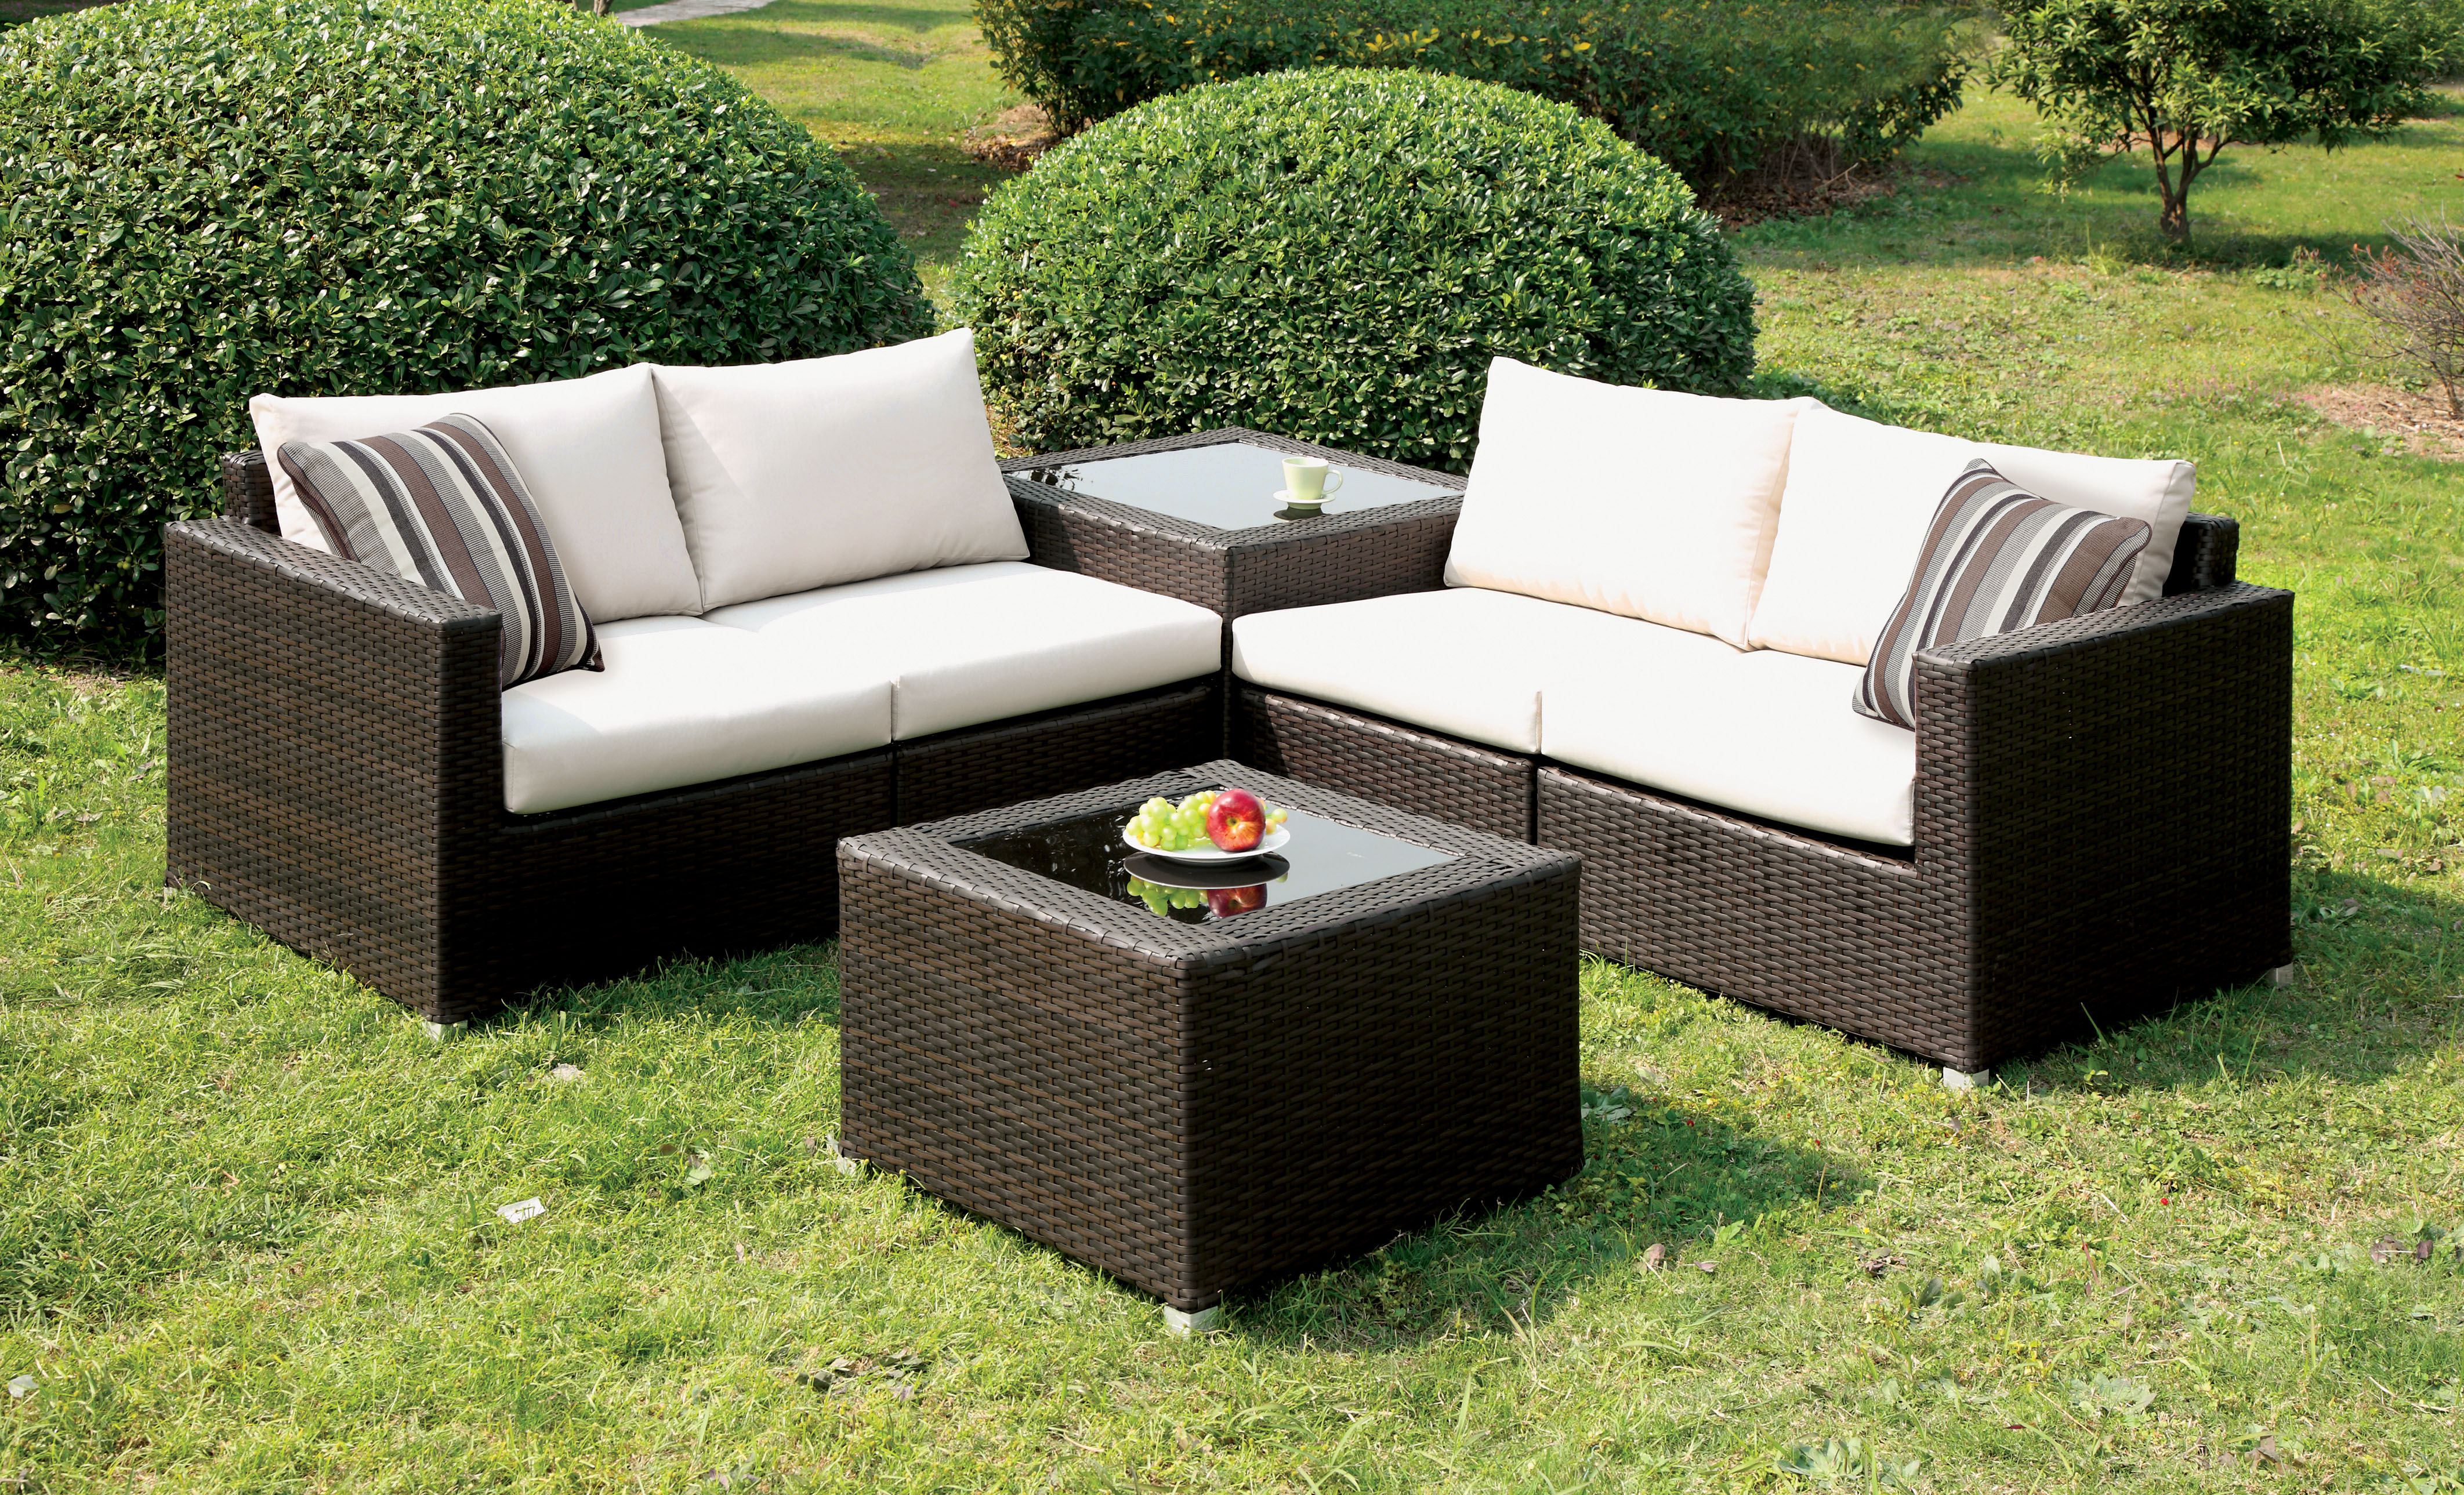 Furniture Of America Arbore 4 Piece Patio Sectional Set